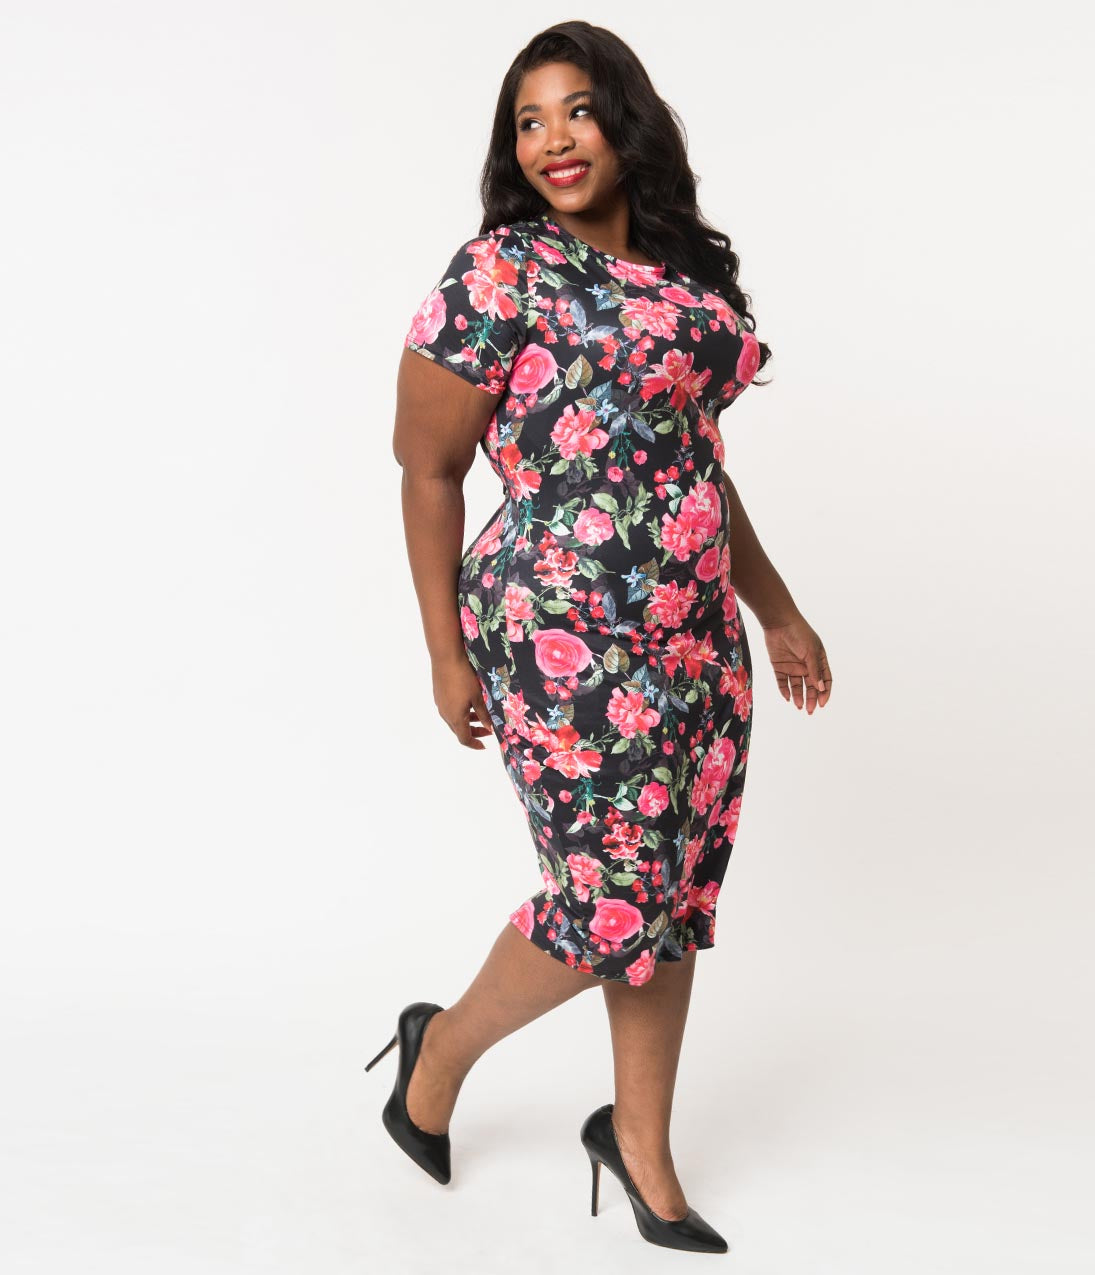 60s 70s Plus Size Dresses, Clothing, Costumes Unique Vintage Plus Size 1960S Style Black  Pink Floral Knit Presley Wiggle Dress $74.00 AT vintagedancer.com